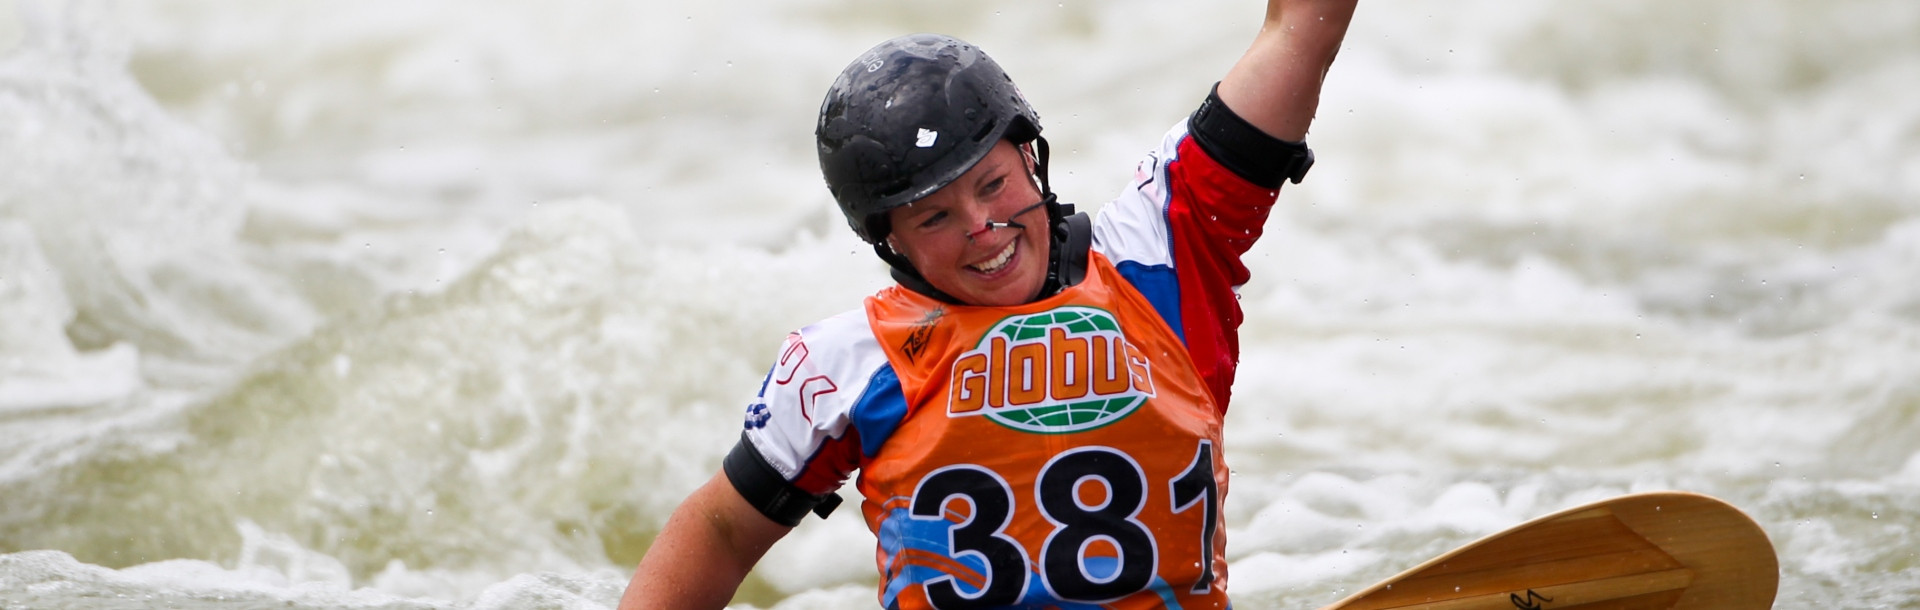 Great Britain's Claire O'Hara claimed her fifth global squirt title on the opening day of competition at the ICF Canoe Freestyle World Championships in San Juan in Argentina ©ICF